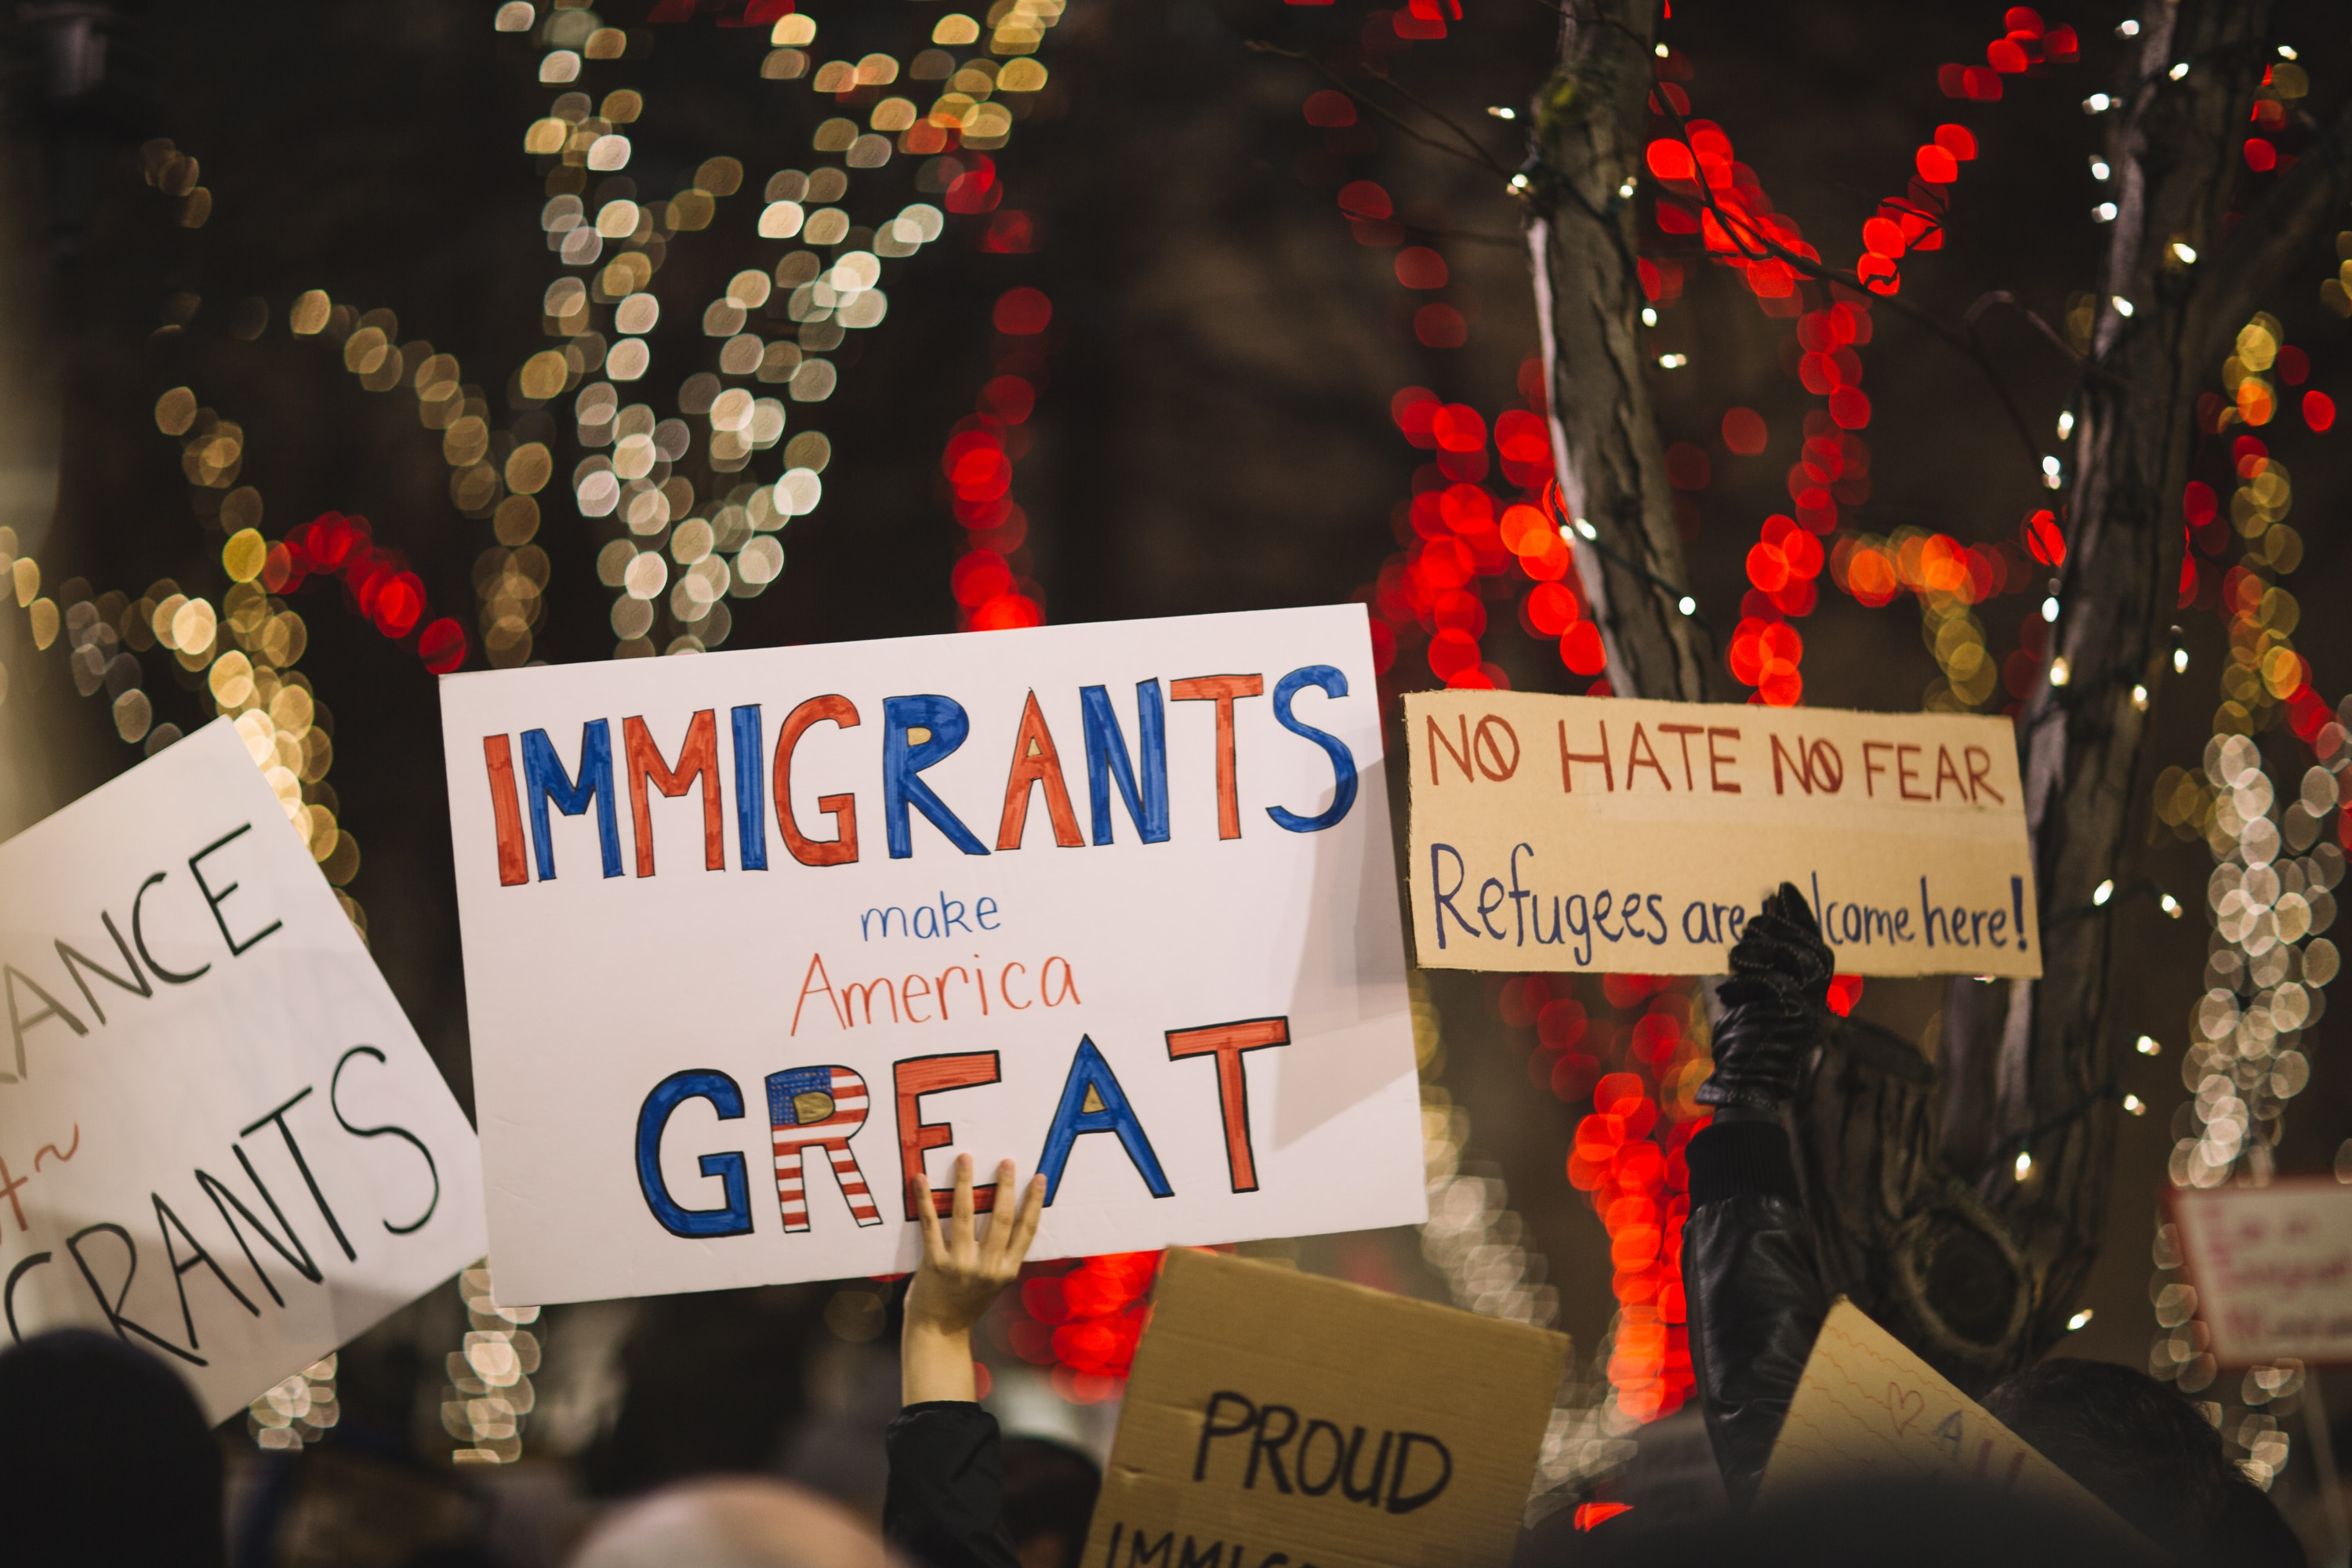 People protesting harsh immigration policies.